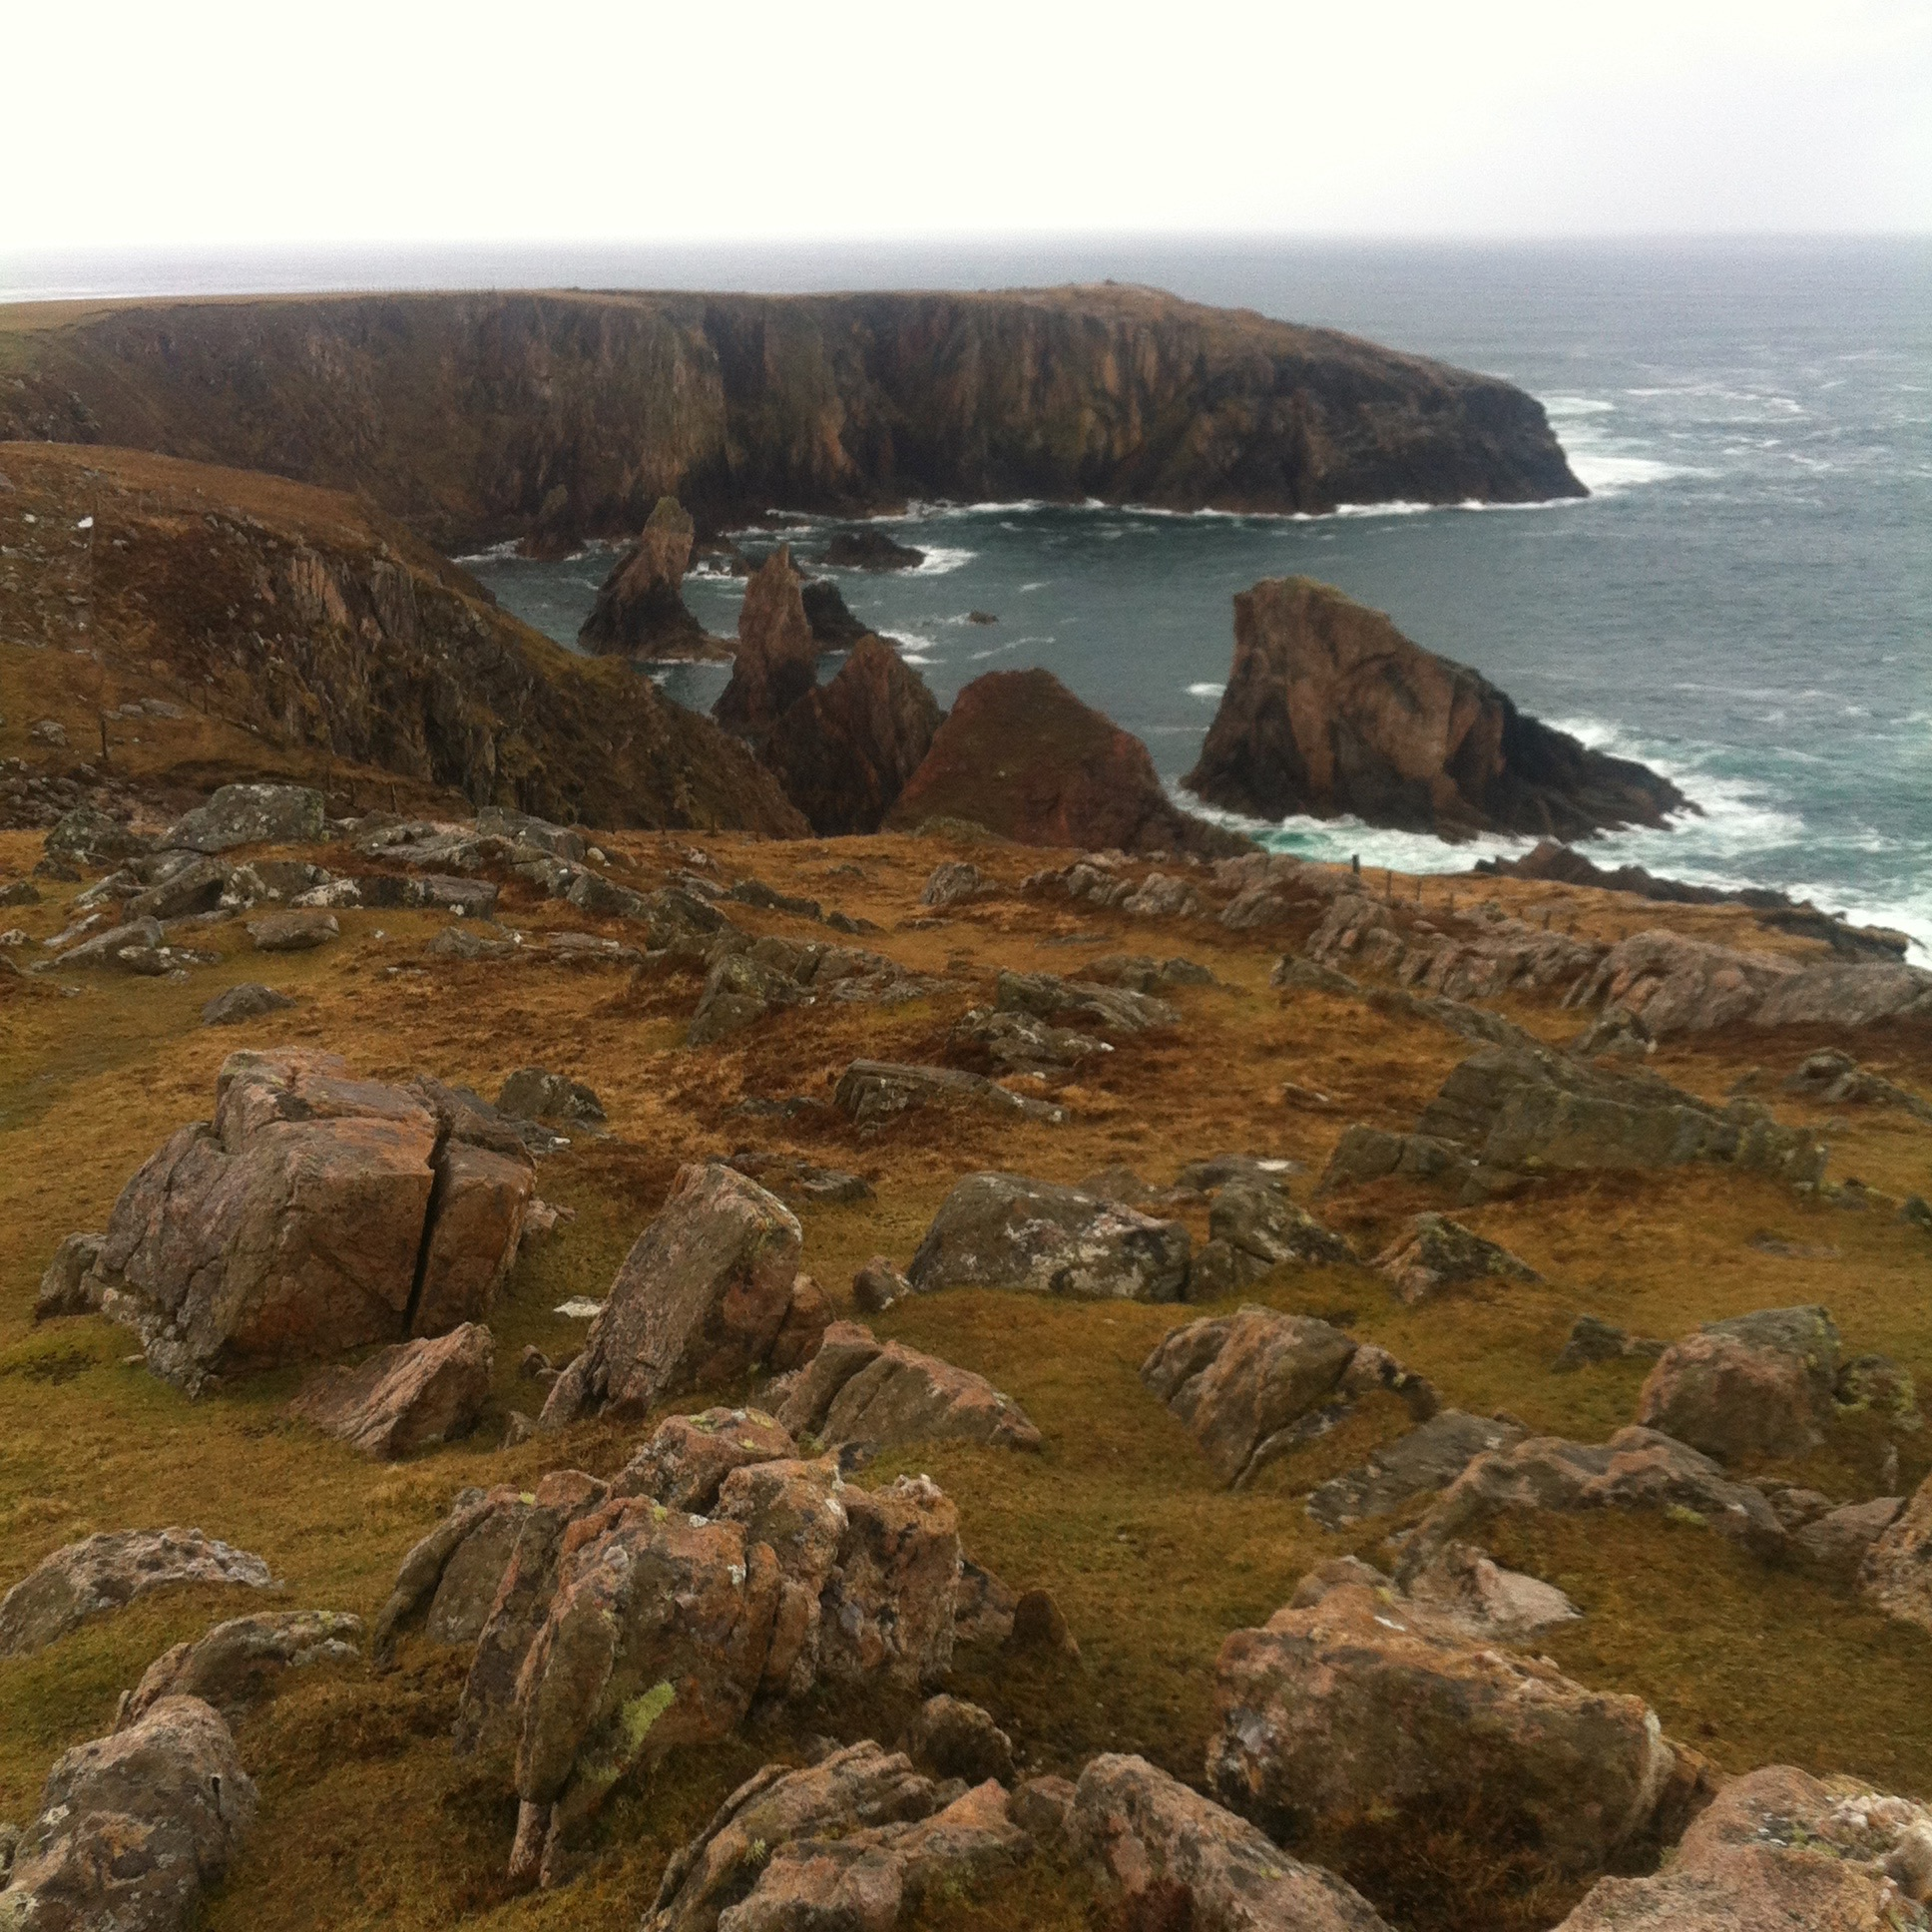 View from Geodha Sgoilt towards the sea stacks, Uig, Isle of Lewis. Image Credit: George Jaramillo